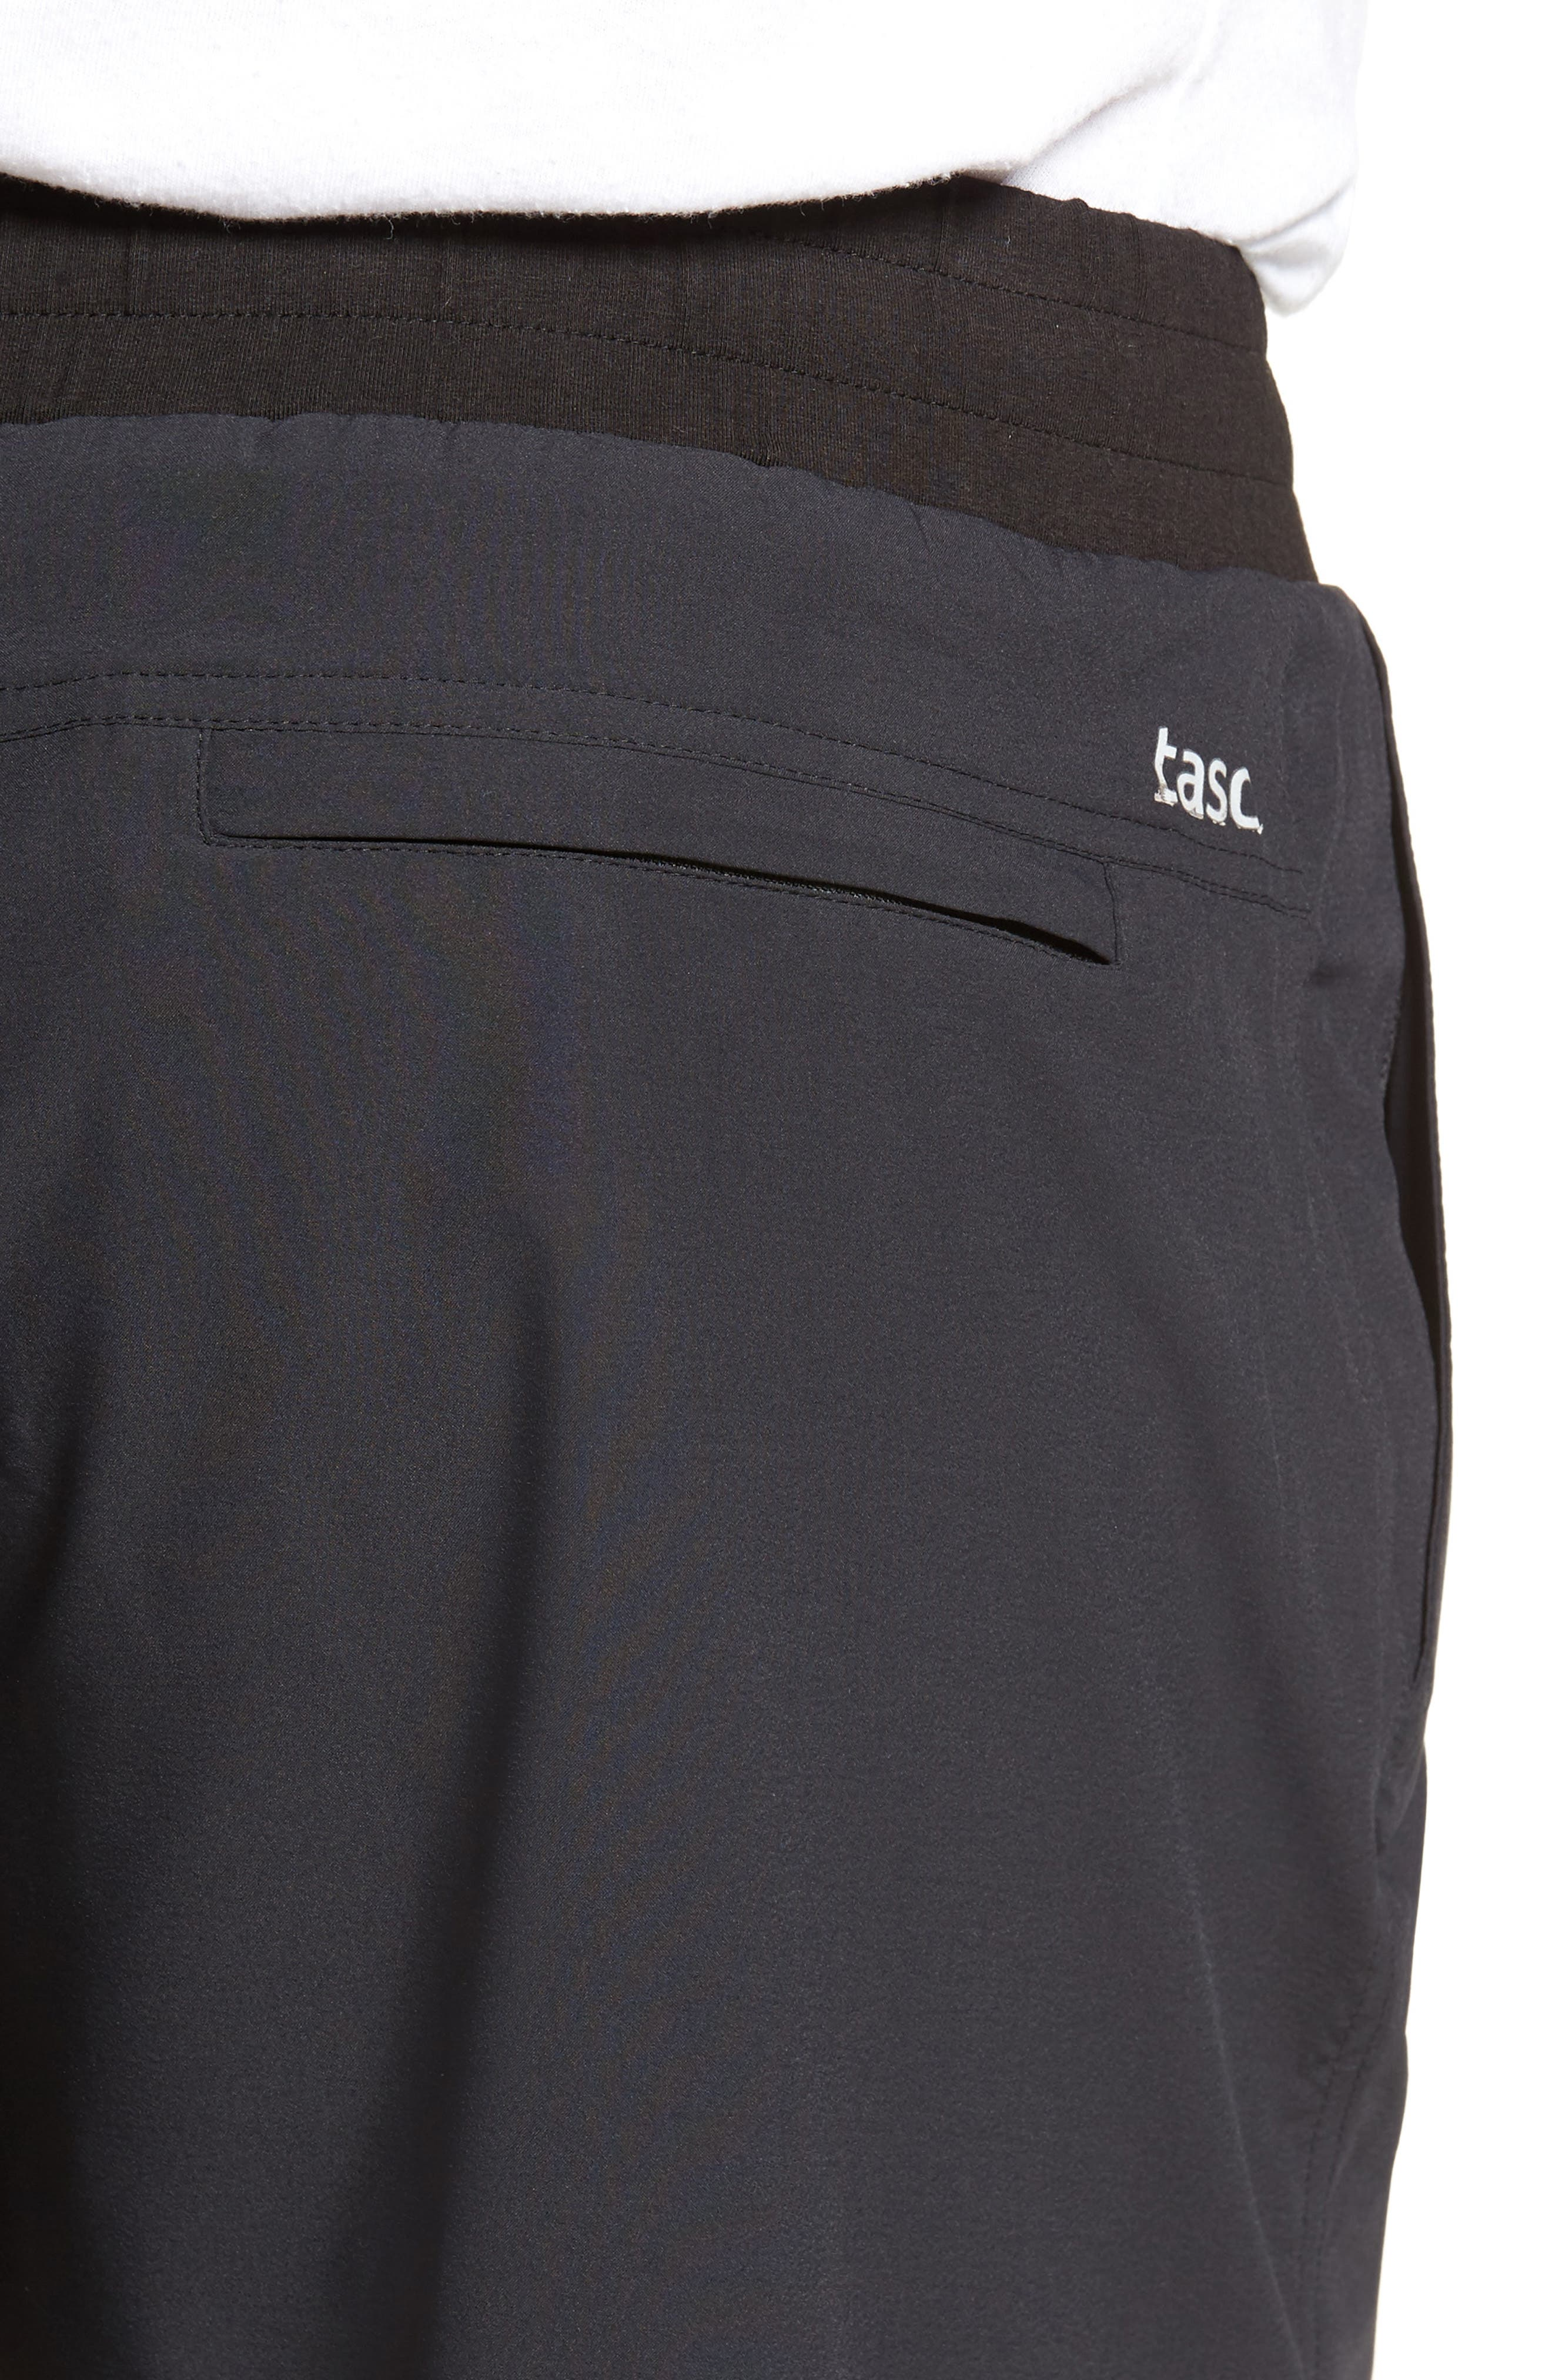 TASC PERFORMANCE, Charge Water Resistant Athletic Shorts, Alternate thumbnail 5, color, BLACK